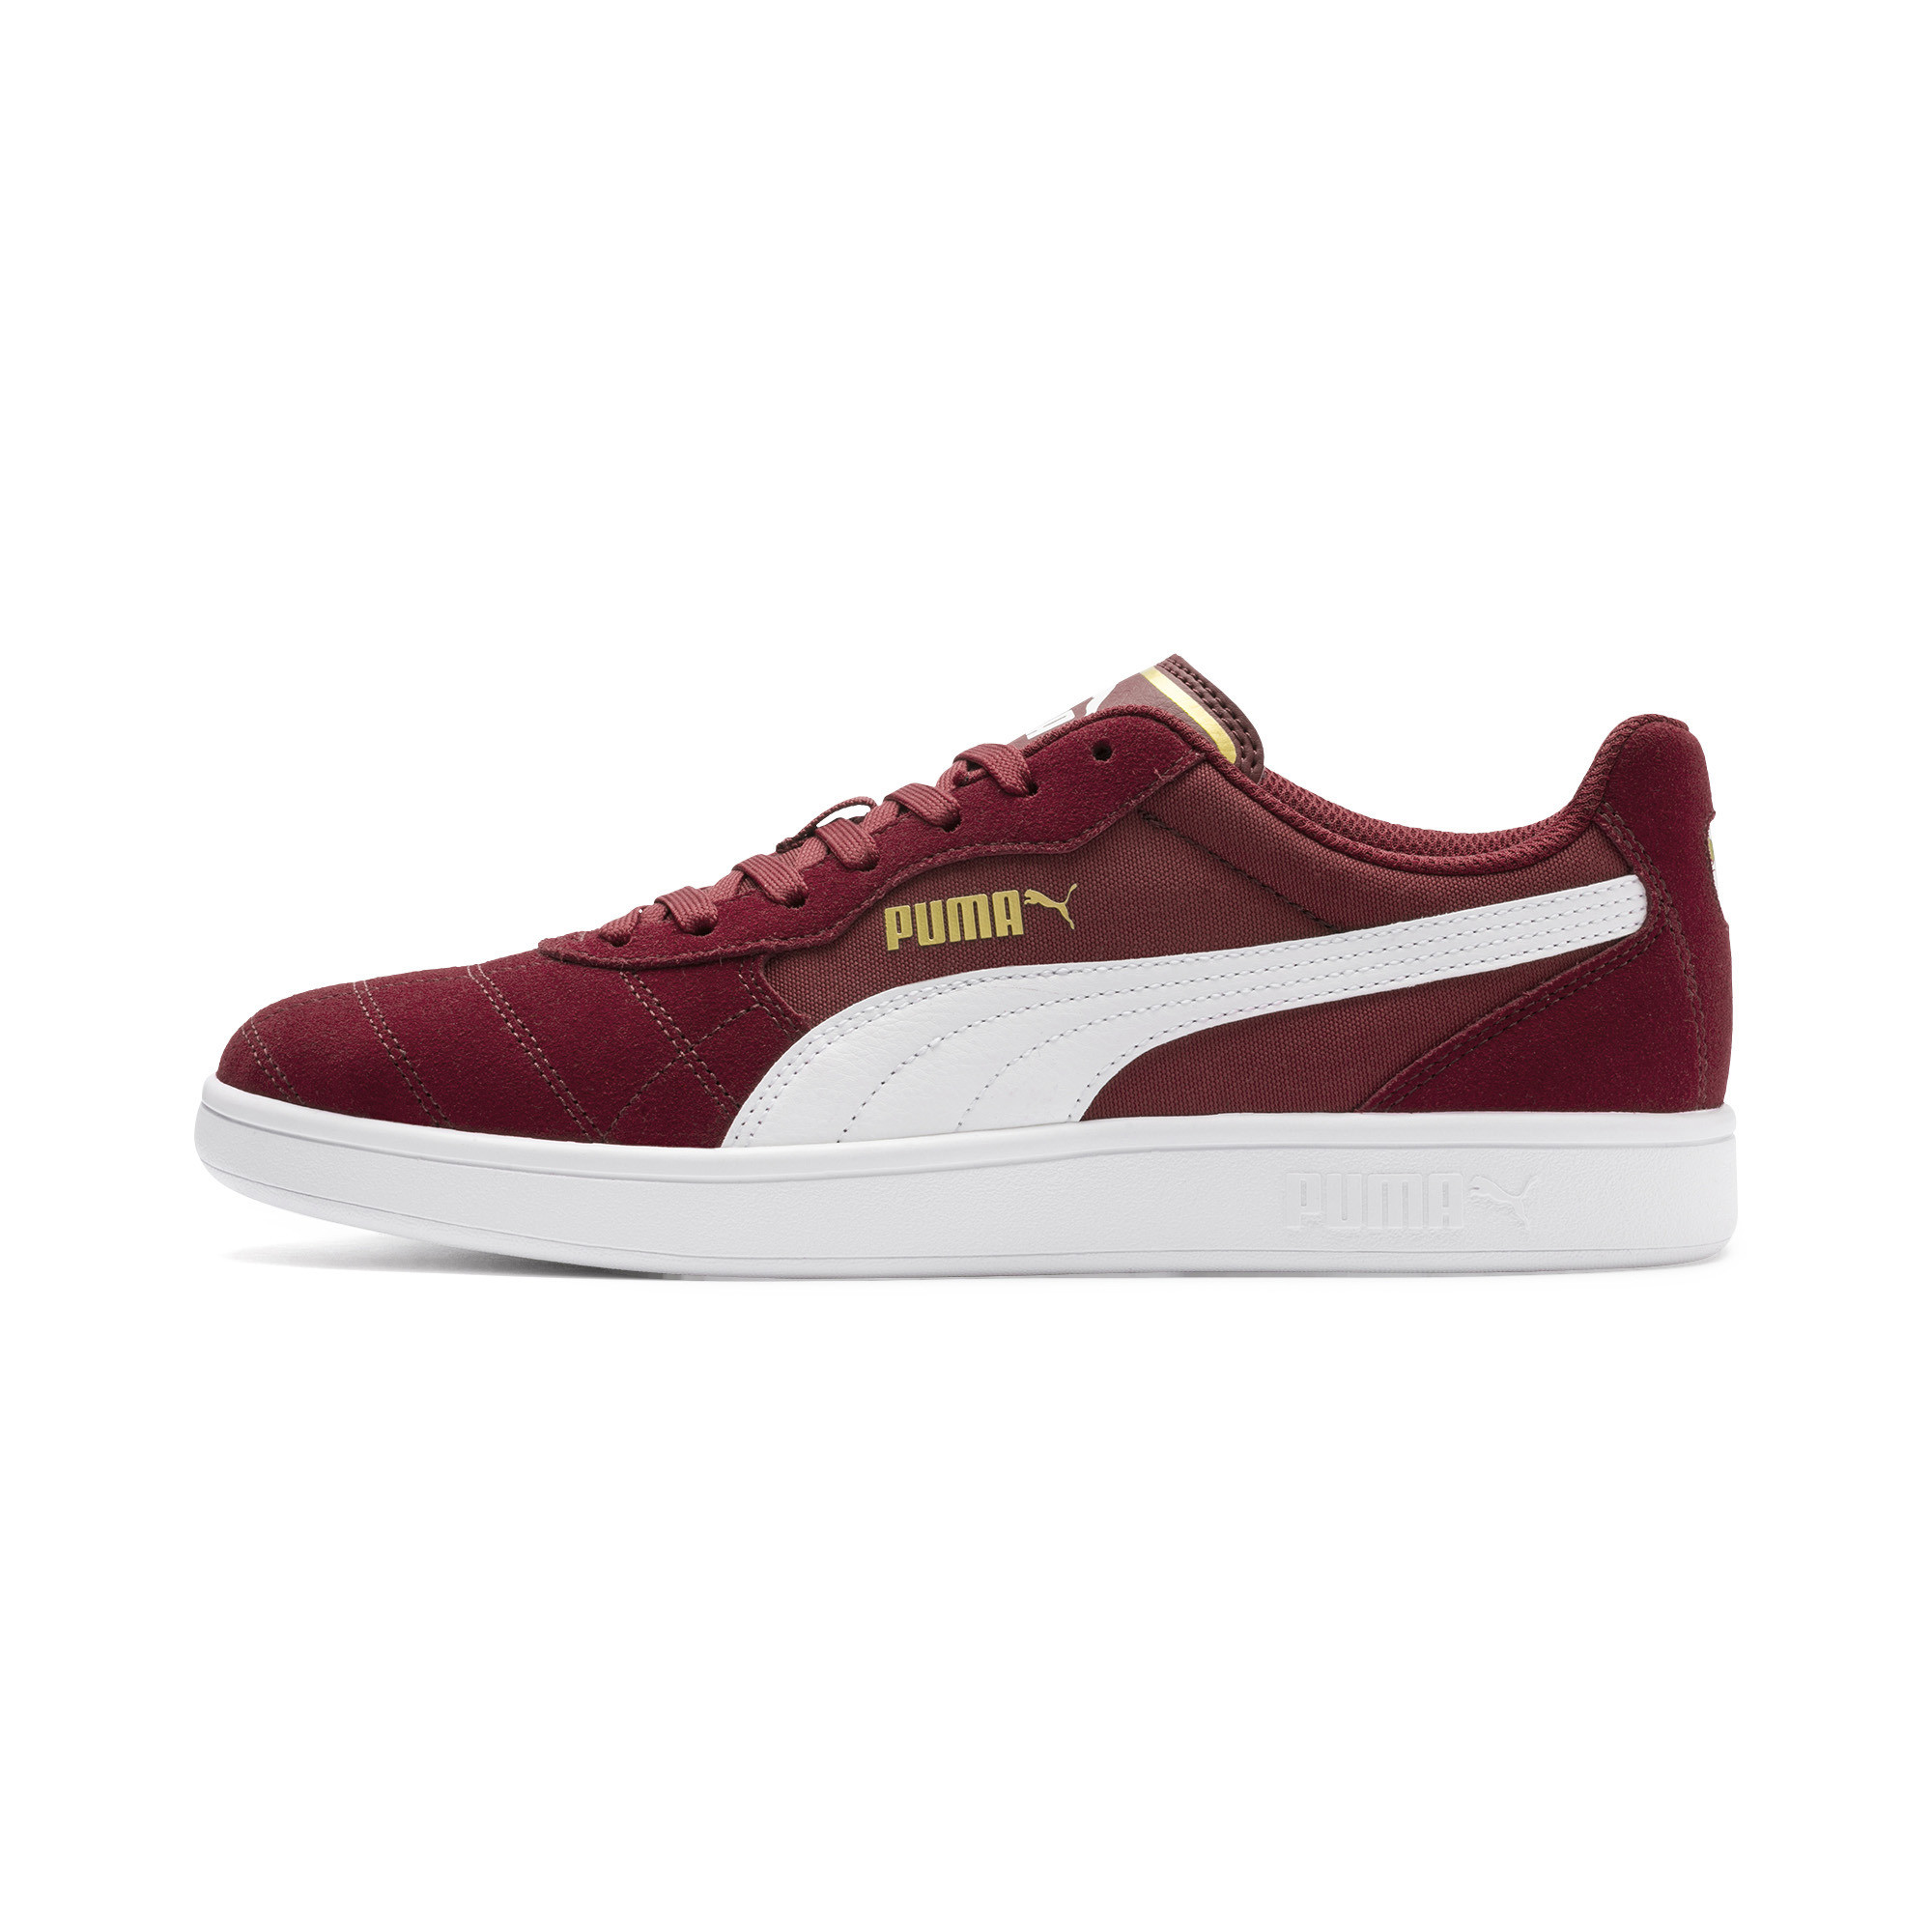 PUMA-Astro-Kick-Men-039-s-Sneakers-Men-Shoe-Basics thumbnail 7